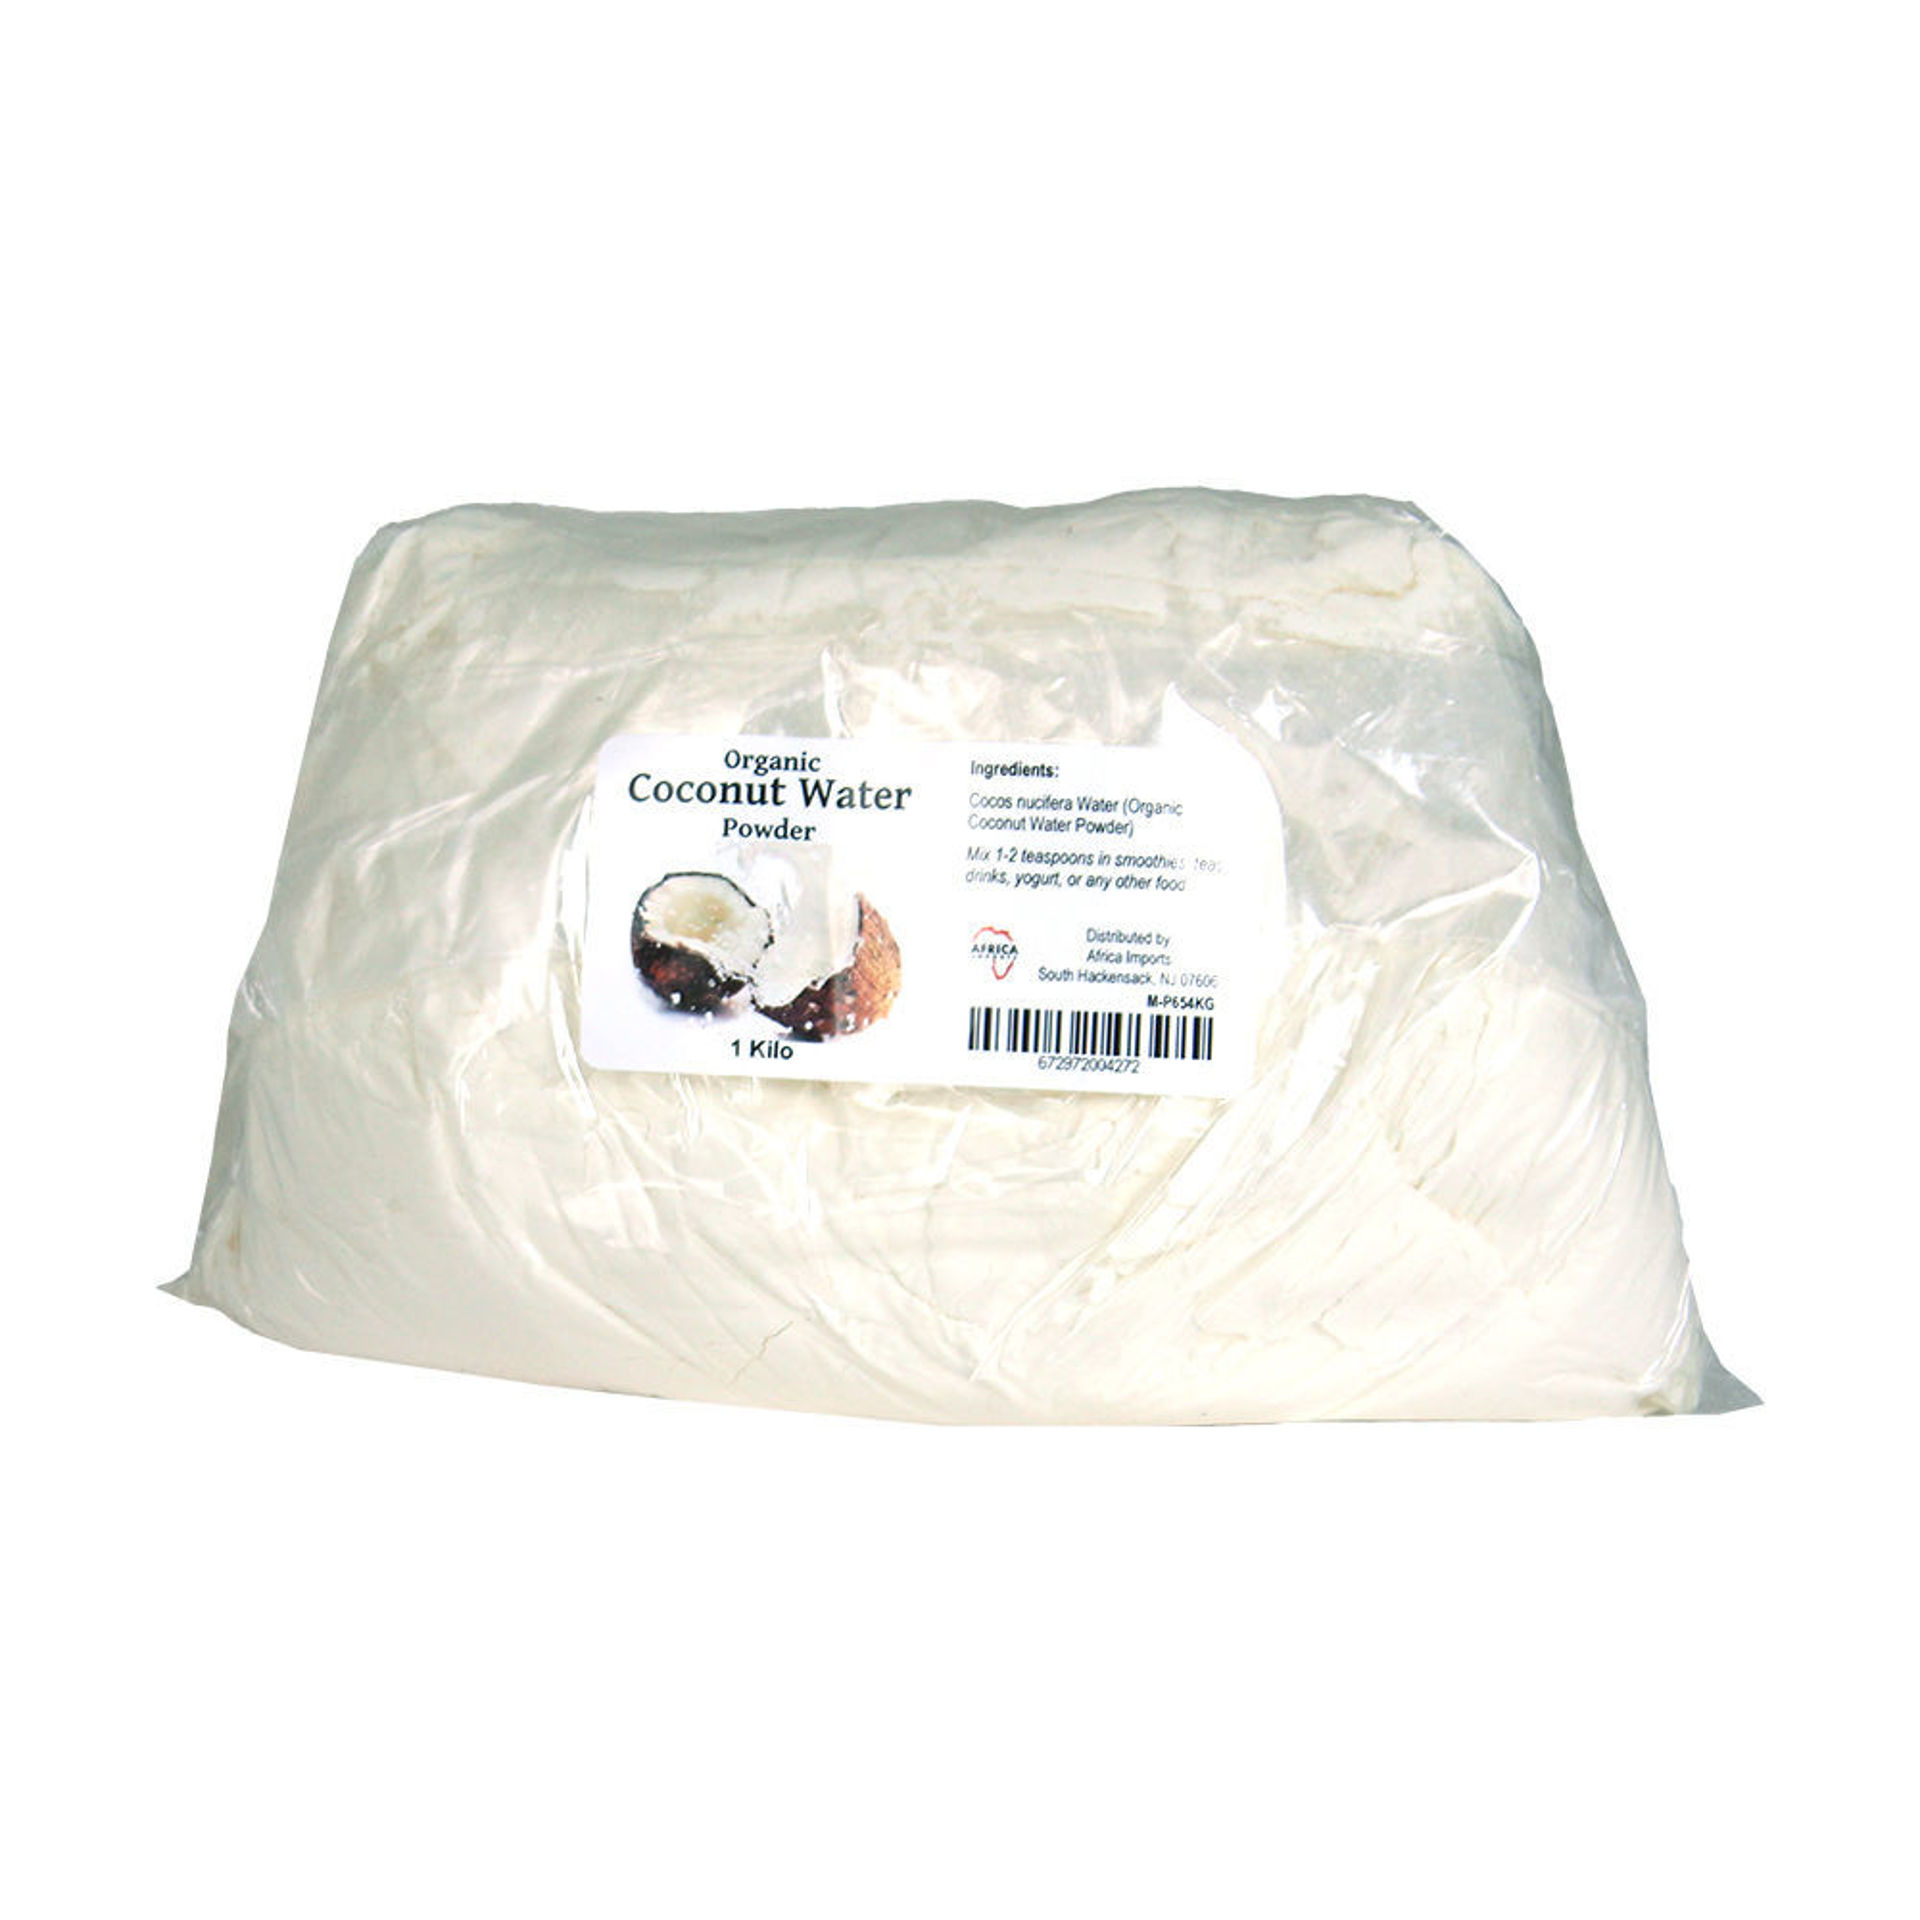 Picture of Organic Coconut Water Powder – 1 Kilo